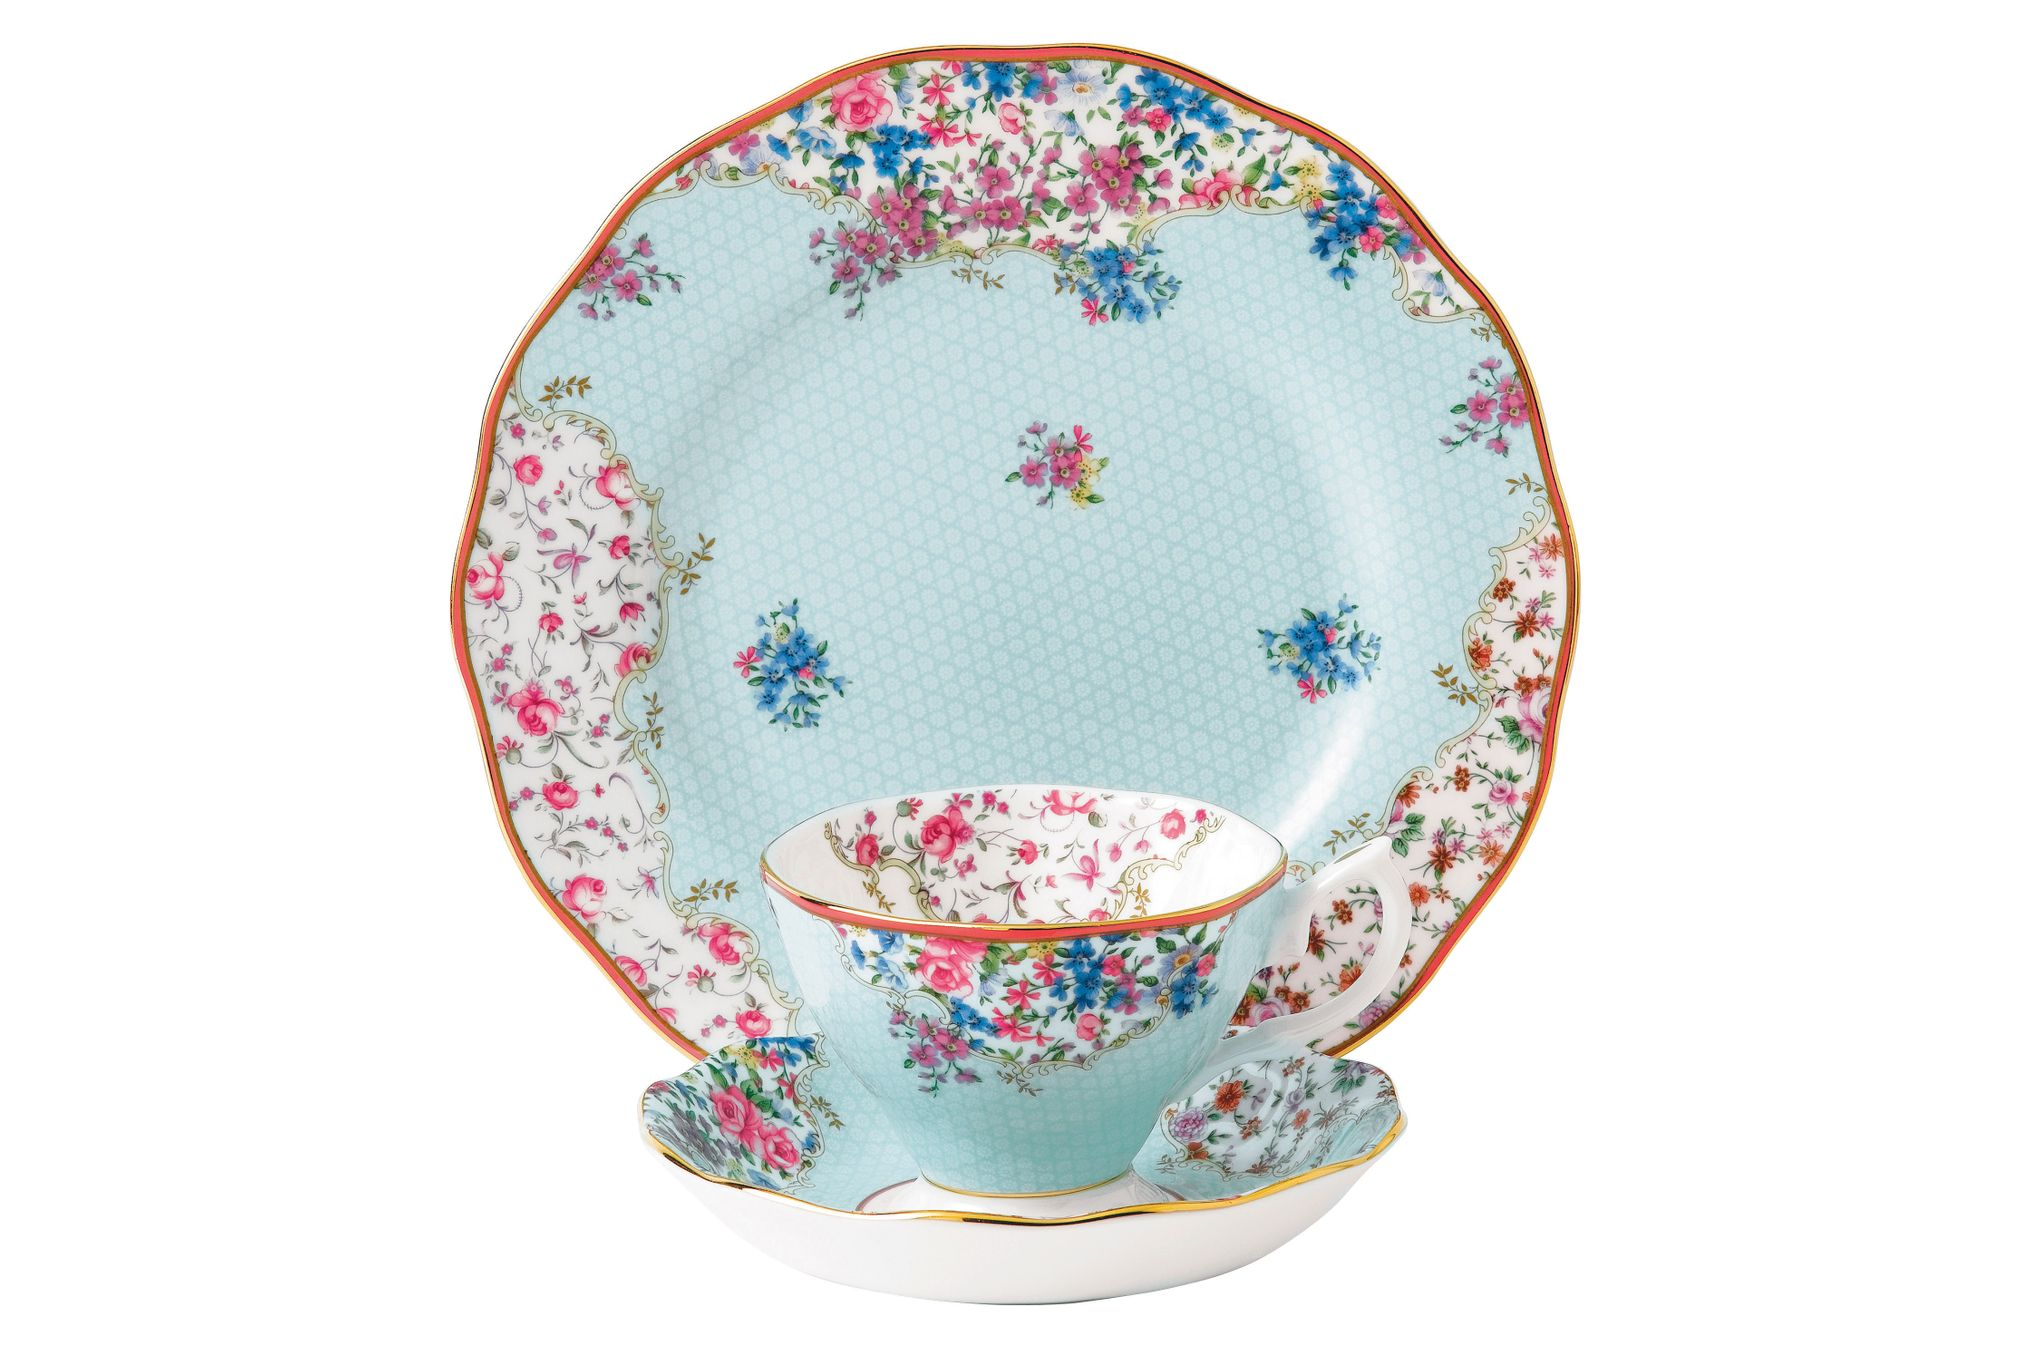 Royal Albert Candy Collection 3 Piece Set Sitting Pretty, Teacup, Saucer & Plate 20cm thumb 1